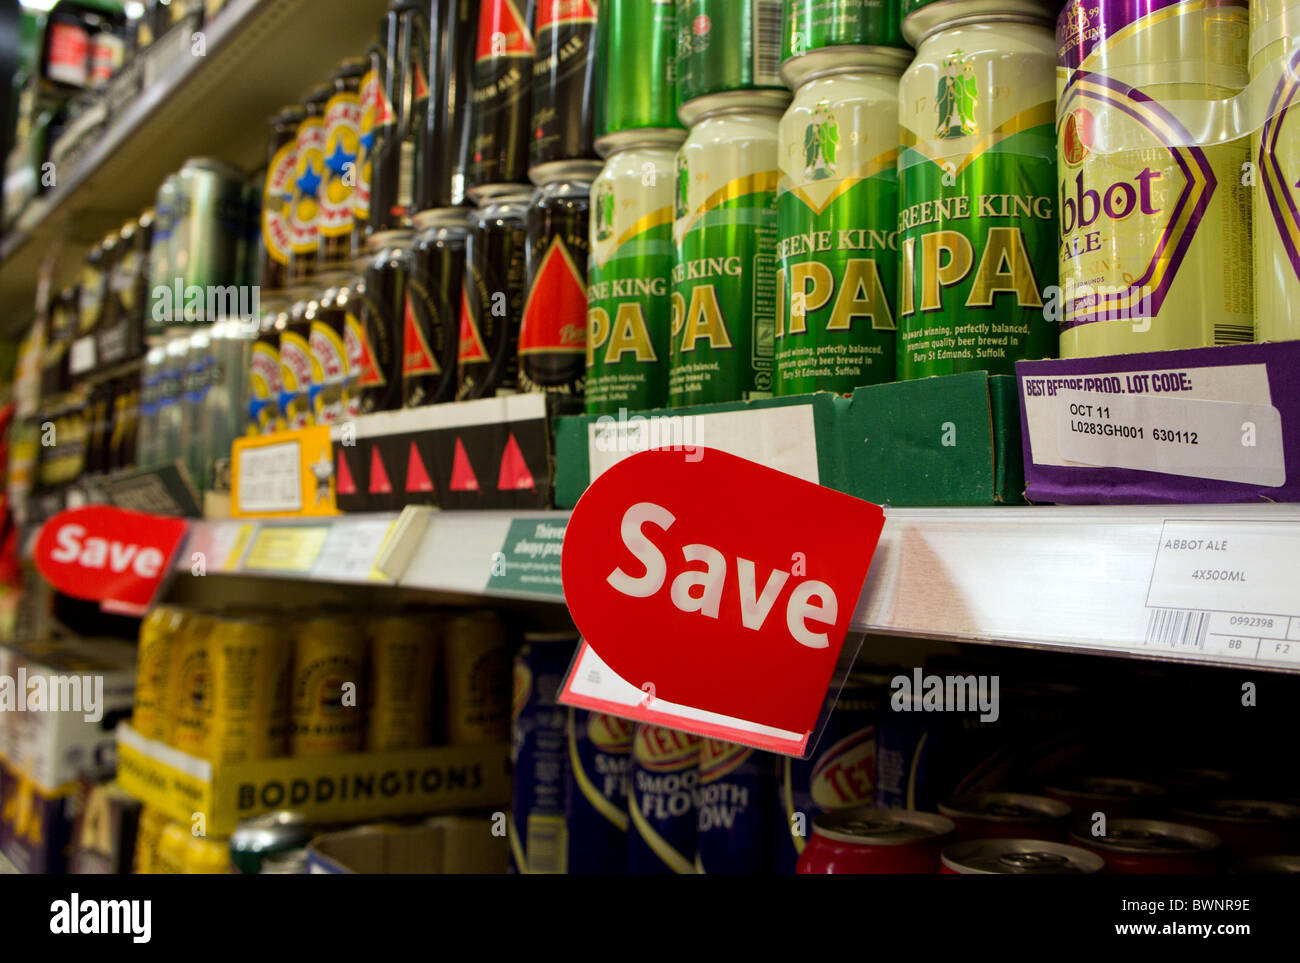 discount beer for sale in a UK supermarket - Stock Image